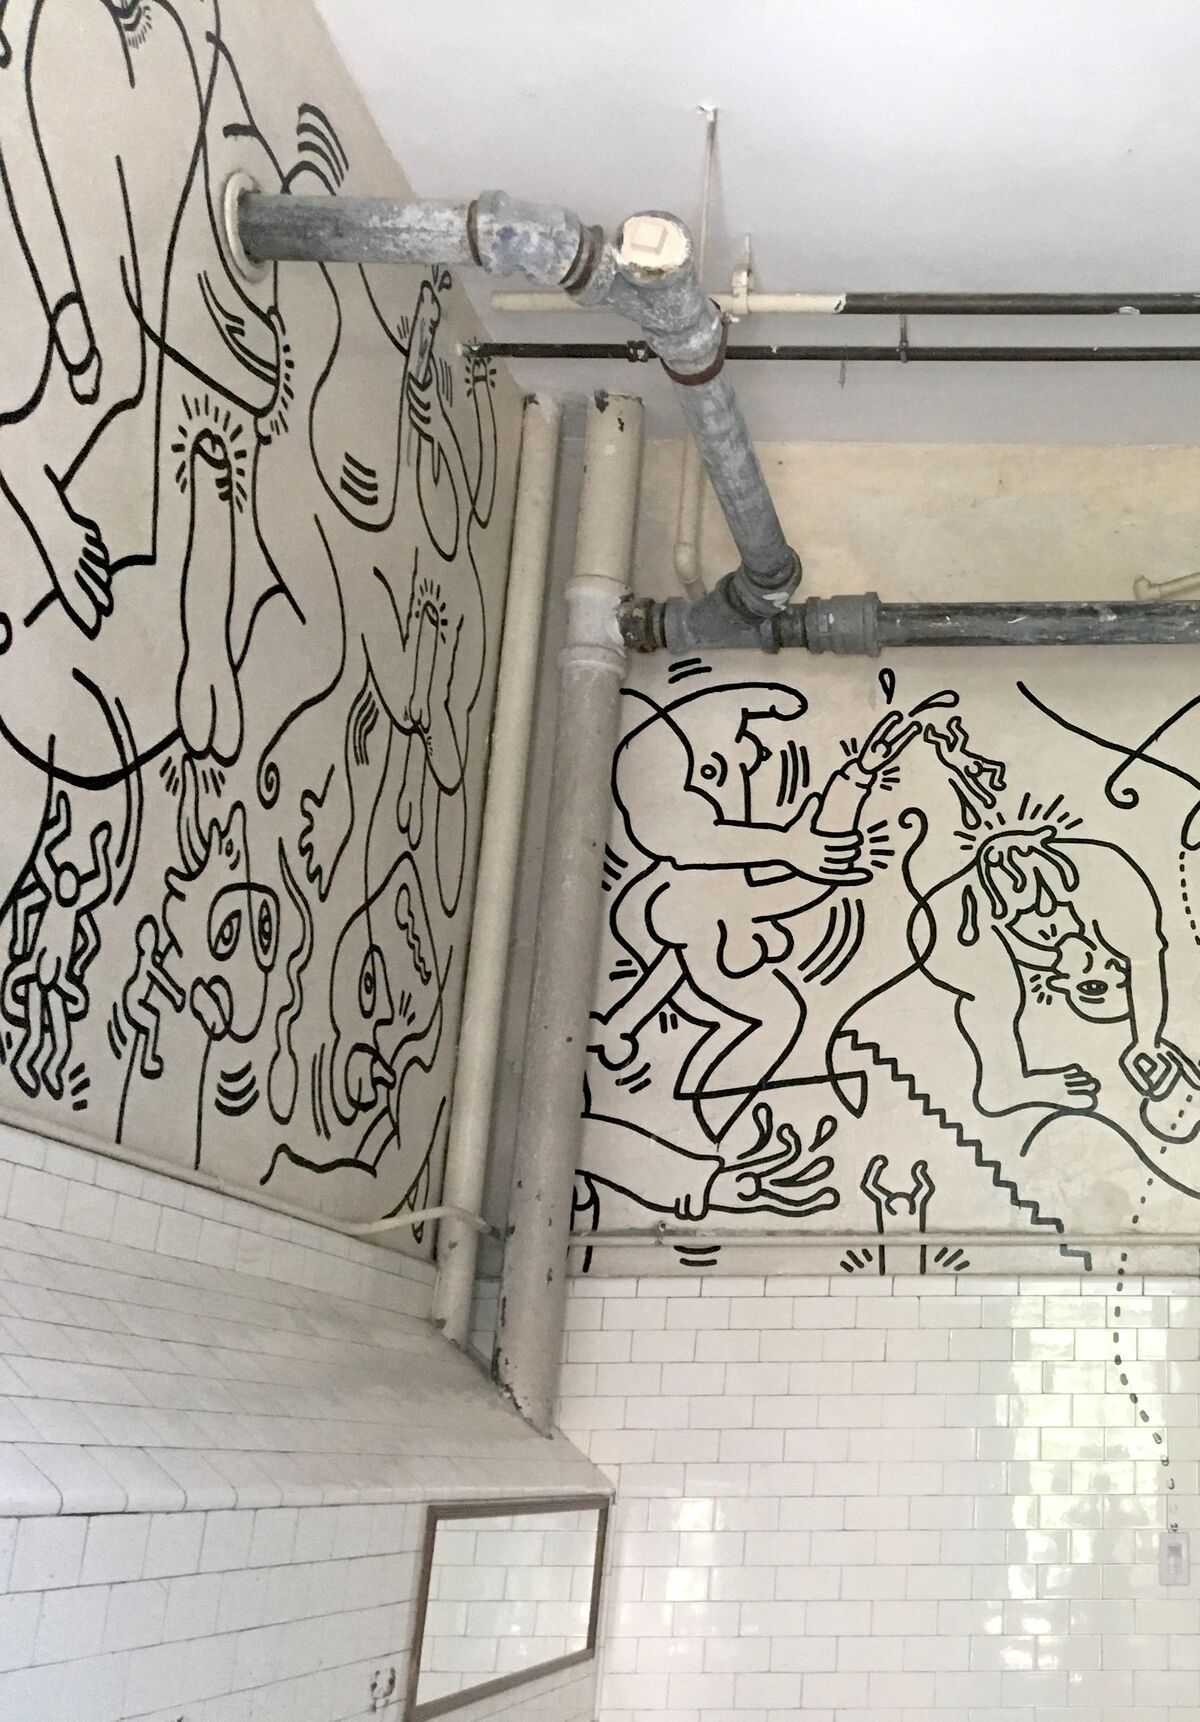 Installation view of Keith Haring, Once Upon a Time, 1989, at the LGBT Community Center, Manhattan.